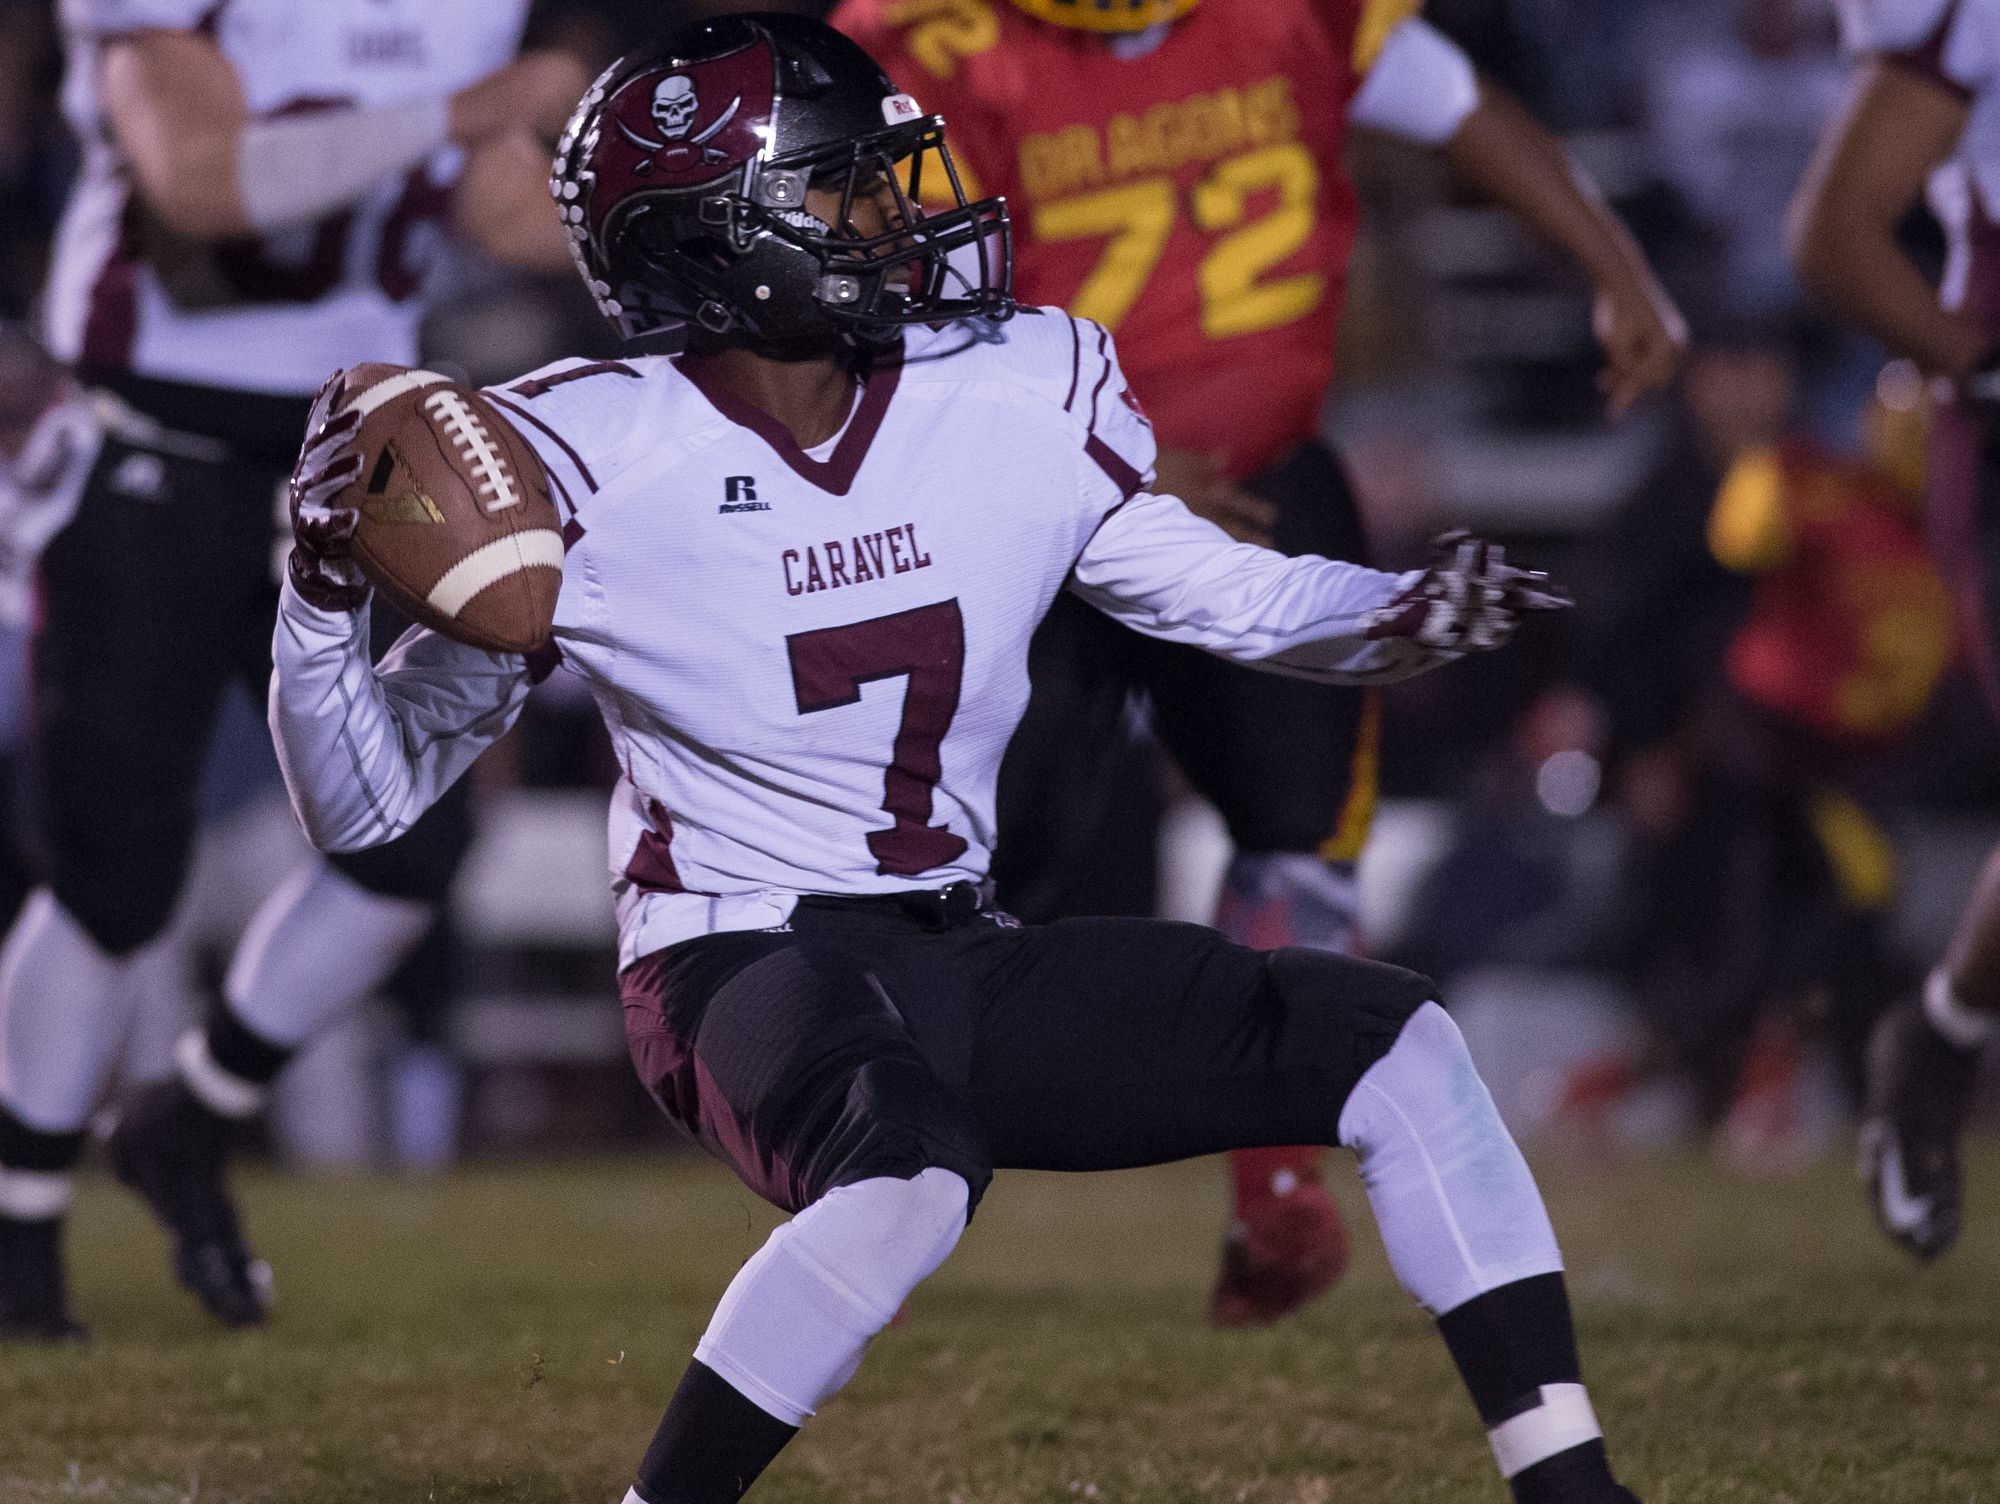 Caravel's Mandela Montgomery (7) throws a pass down the field in the first quarter against Glasgow in the opening round of the DIAA Division II playoffs at Glasgow High School.